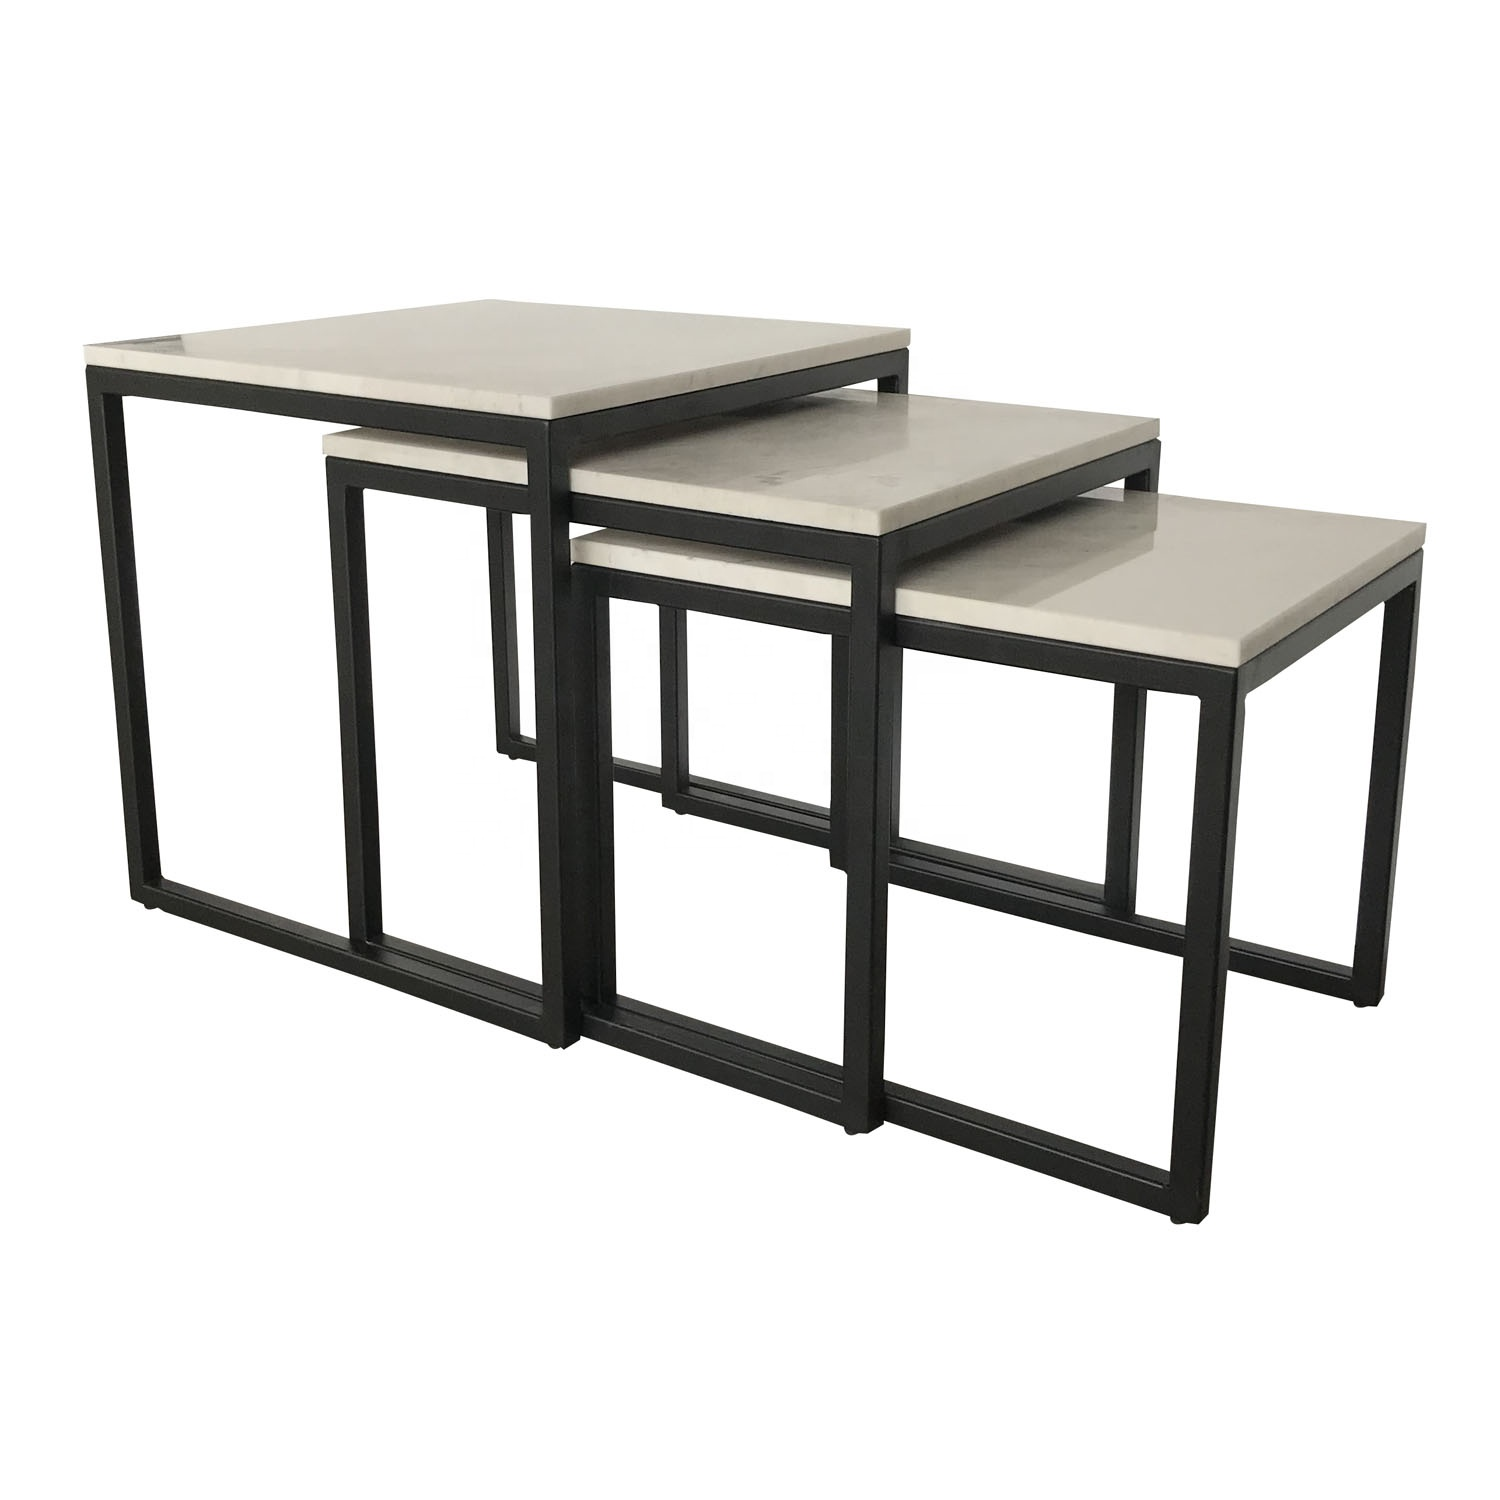 Picture of: Black Iron Base Marble Top Nest Side Table Buy Marble Nest Table Marble Top Side Table Marble Top Table Product On Alibaba Com